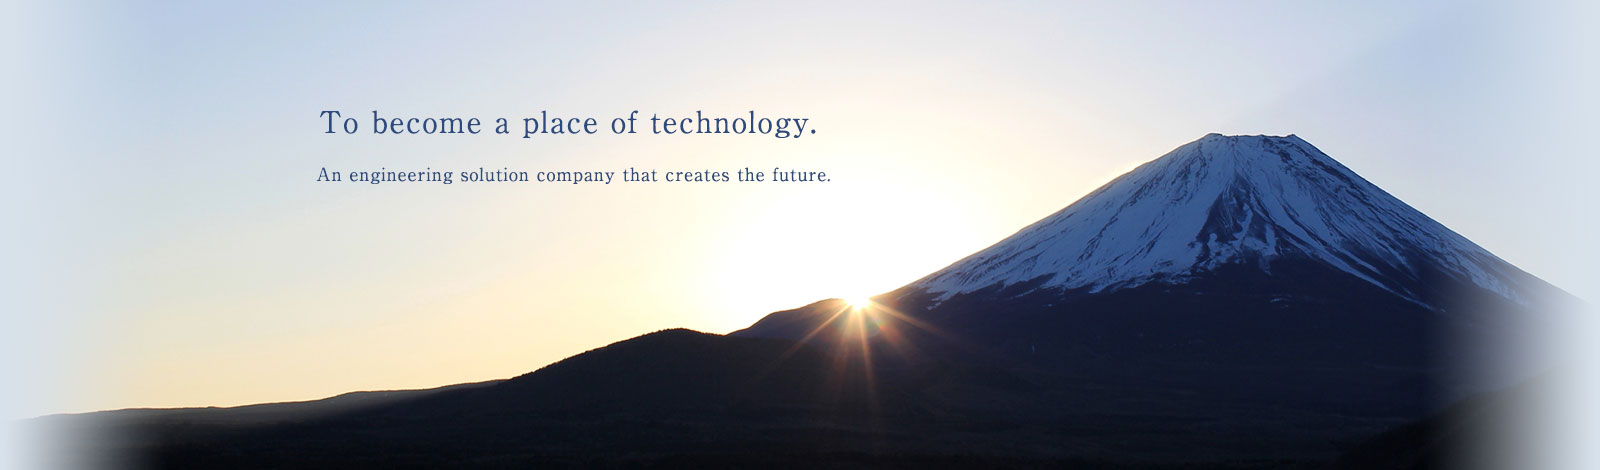 To become a place of technology.An engineering solution company that creates the future.